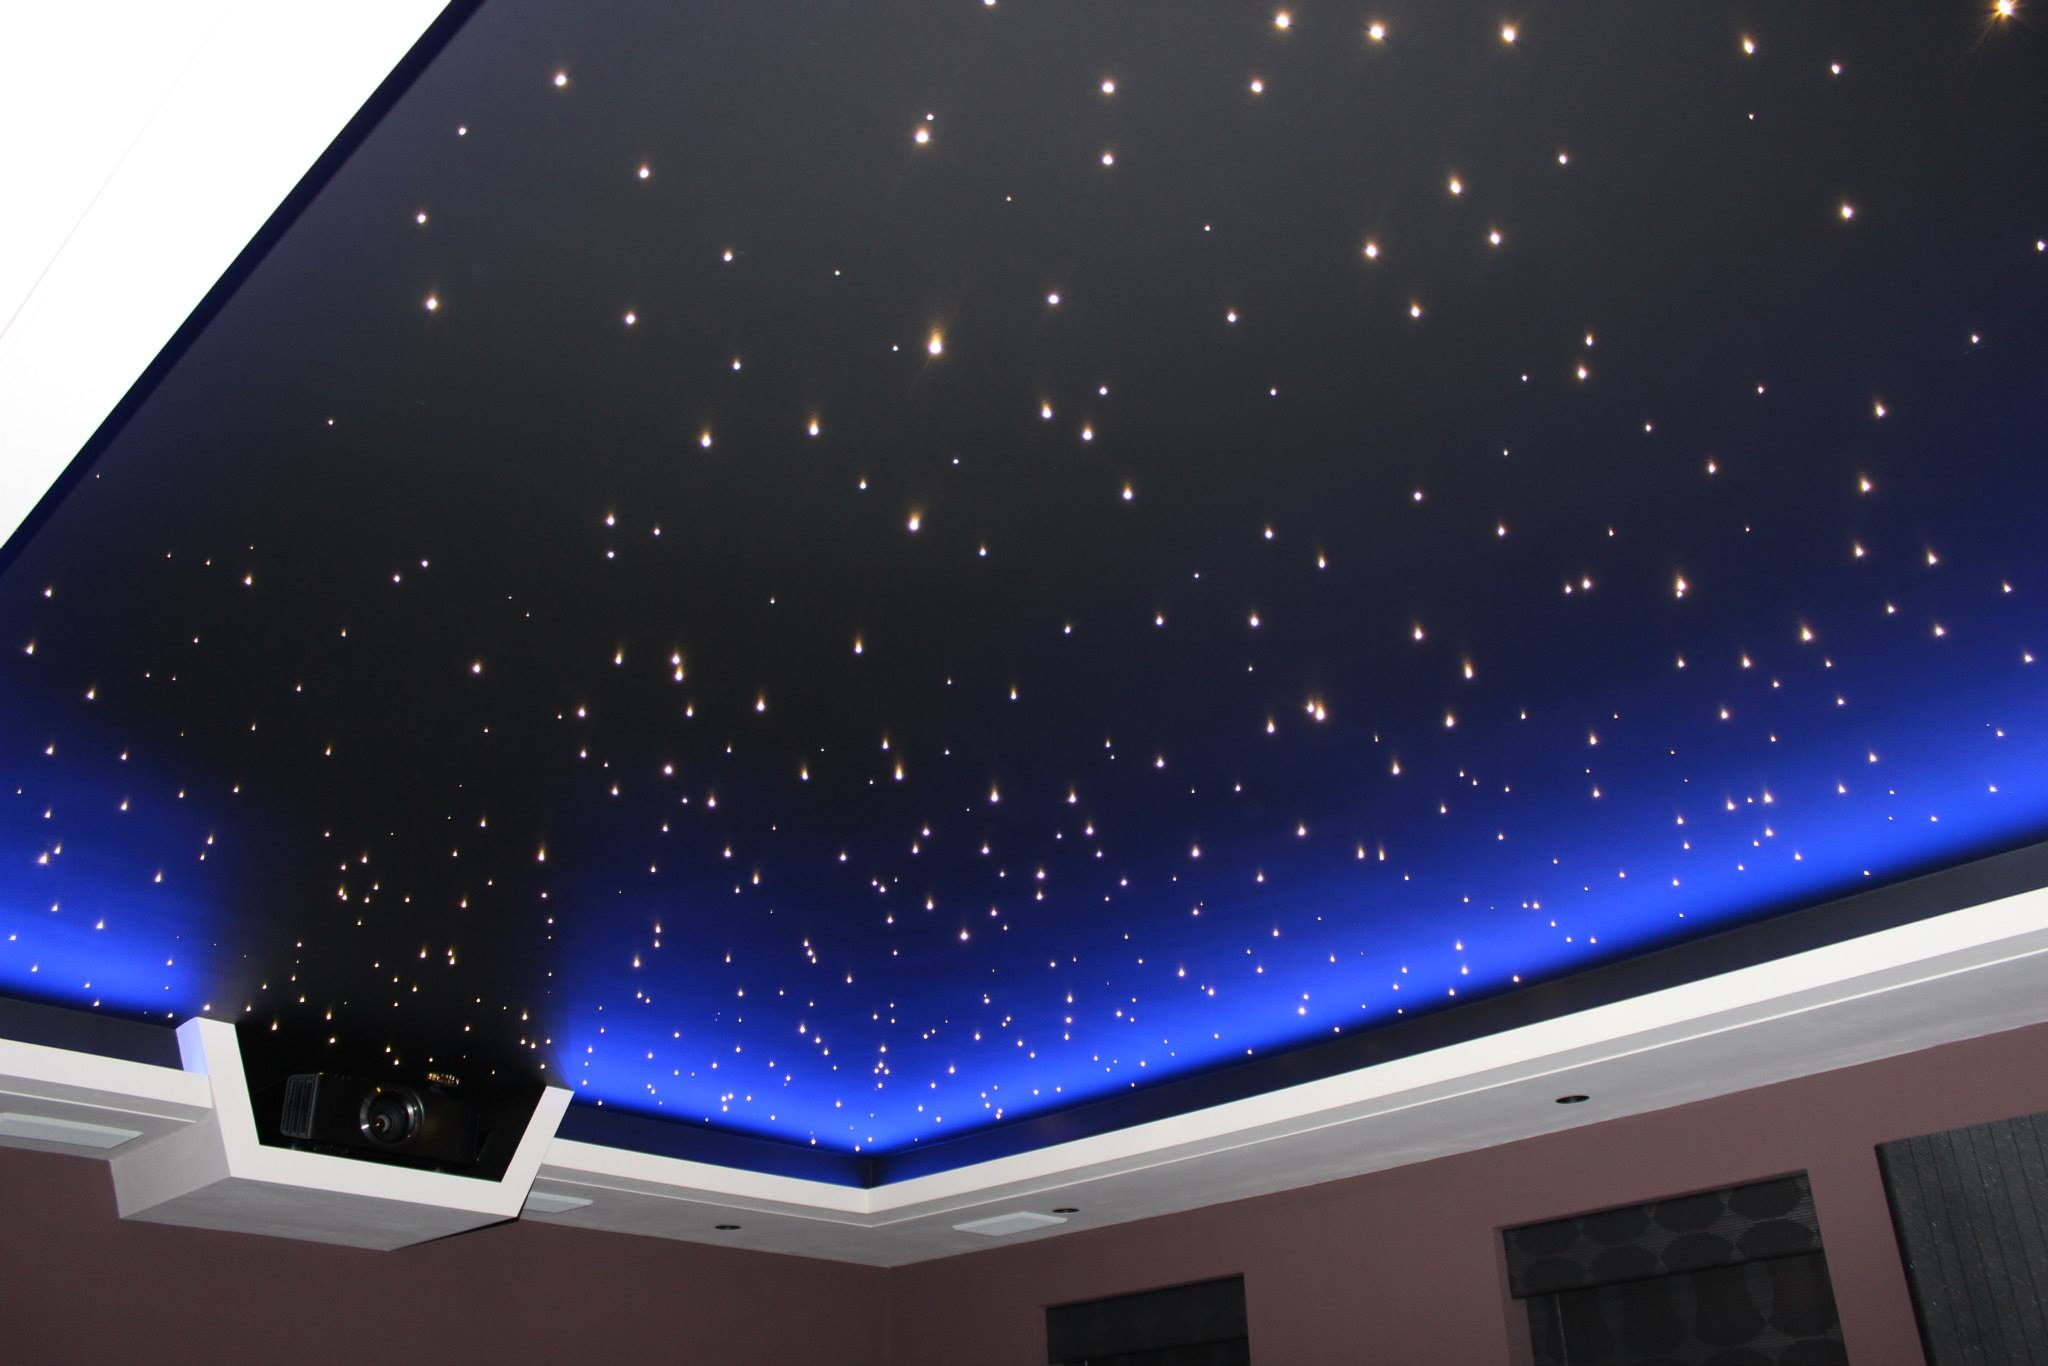 Ceiling Lights That Look Like Stars : Watch night sky in your room with star effect ceiling